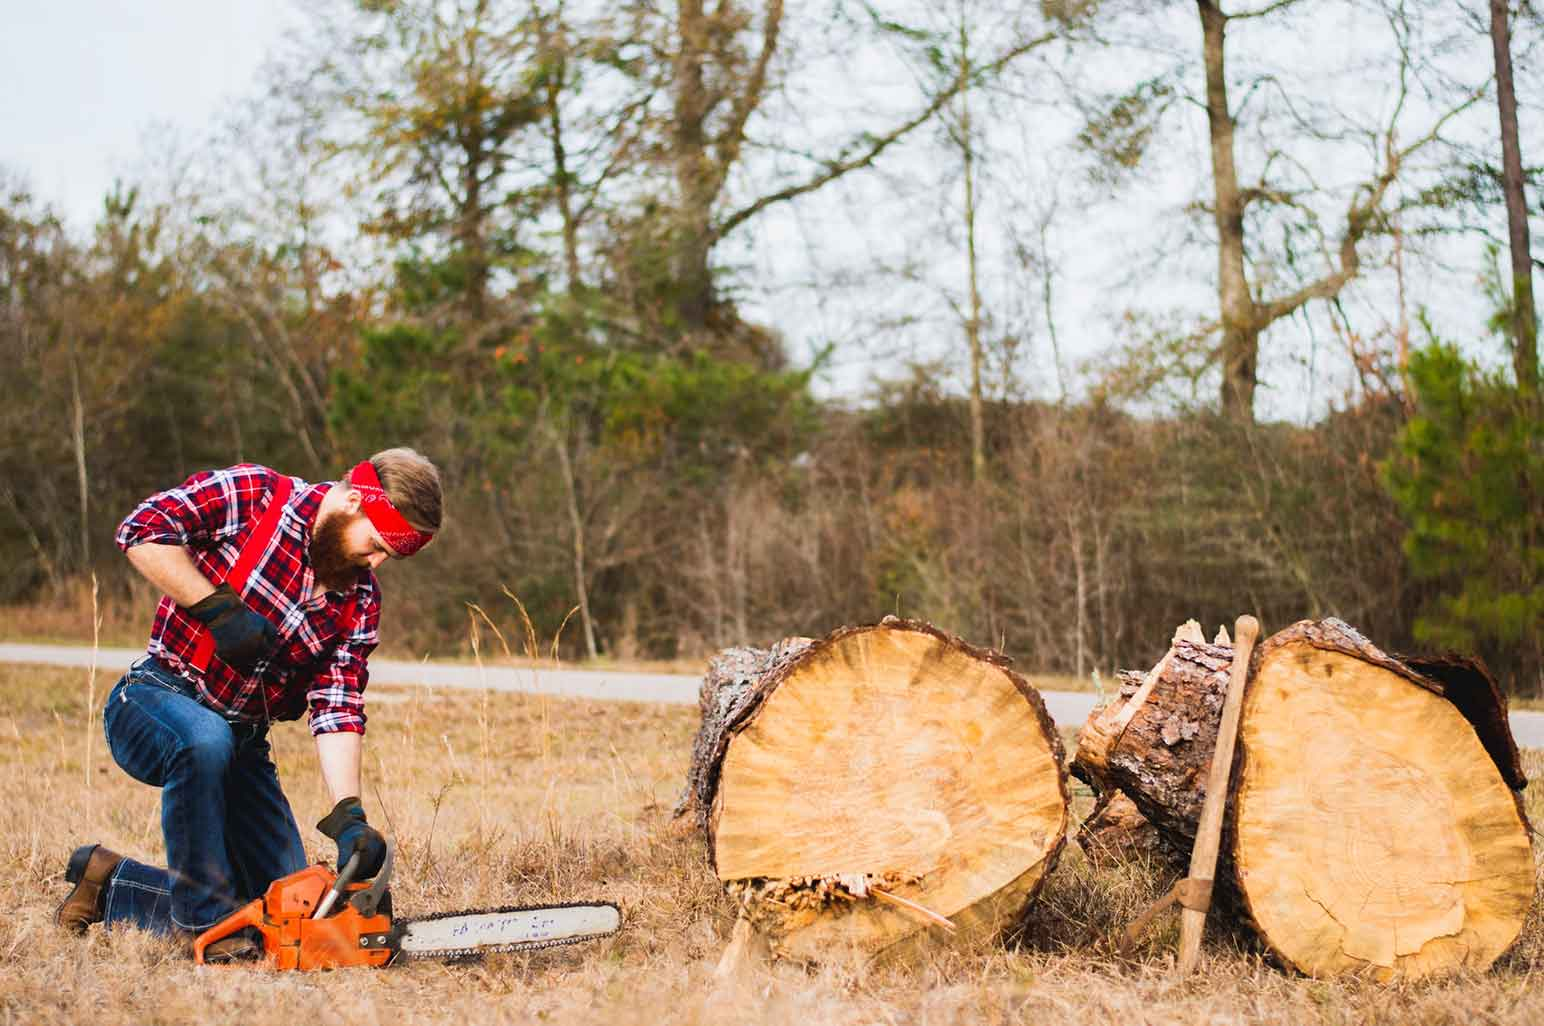 Things to Consider Before Buying a Chainsaw